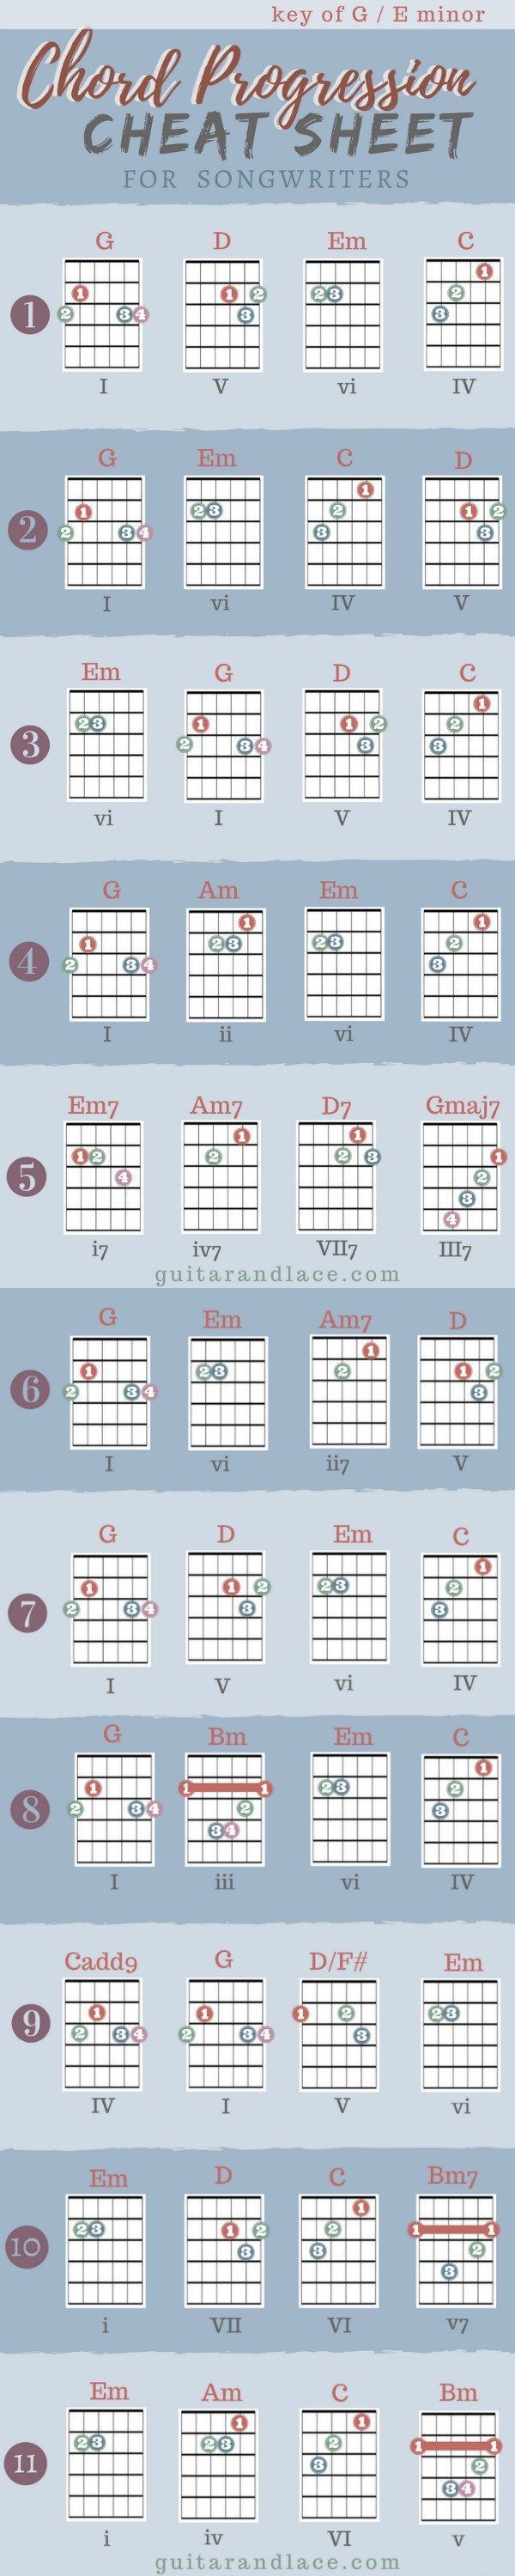 23 best guitar chord chart lefty images on pinterest acoustic guitar chord progressions lyric tips songwriting strategies hexwebz Images